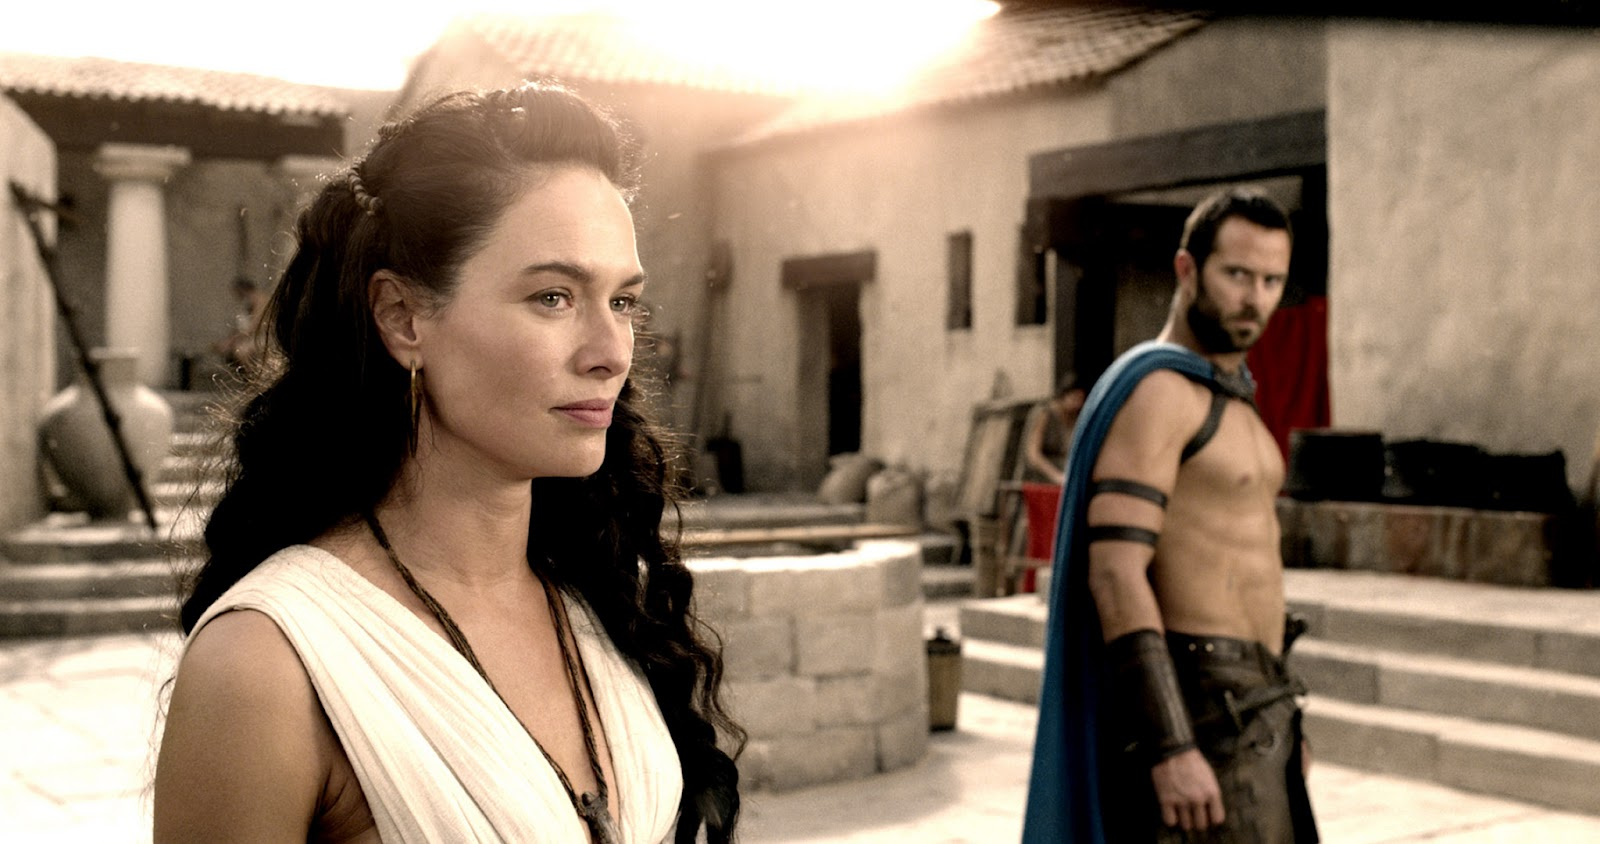 300: Rise of an Empire - Lena Headley as Queen Gorgo & Sullivan Stapleton as Themistokles